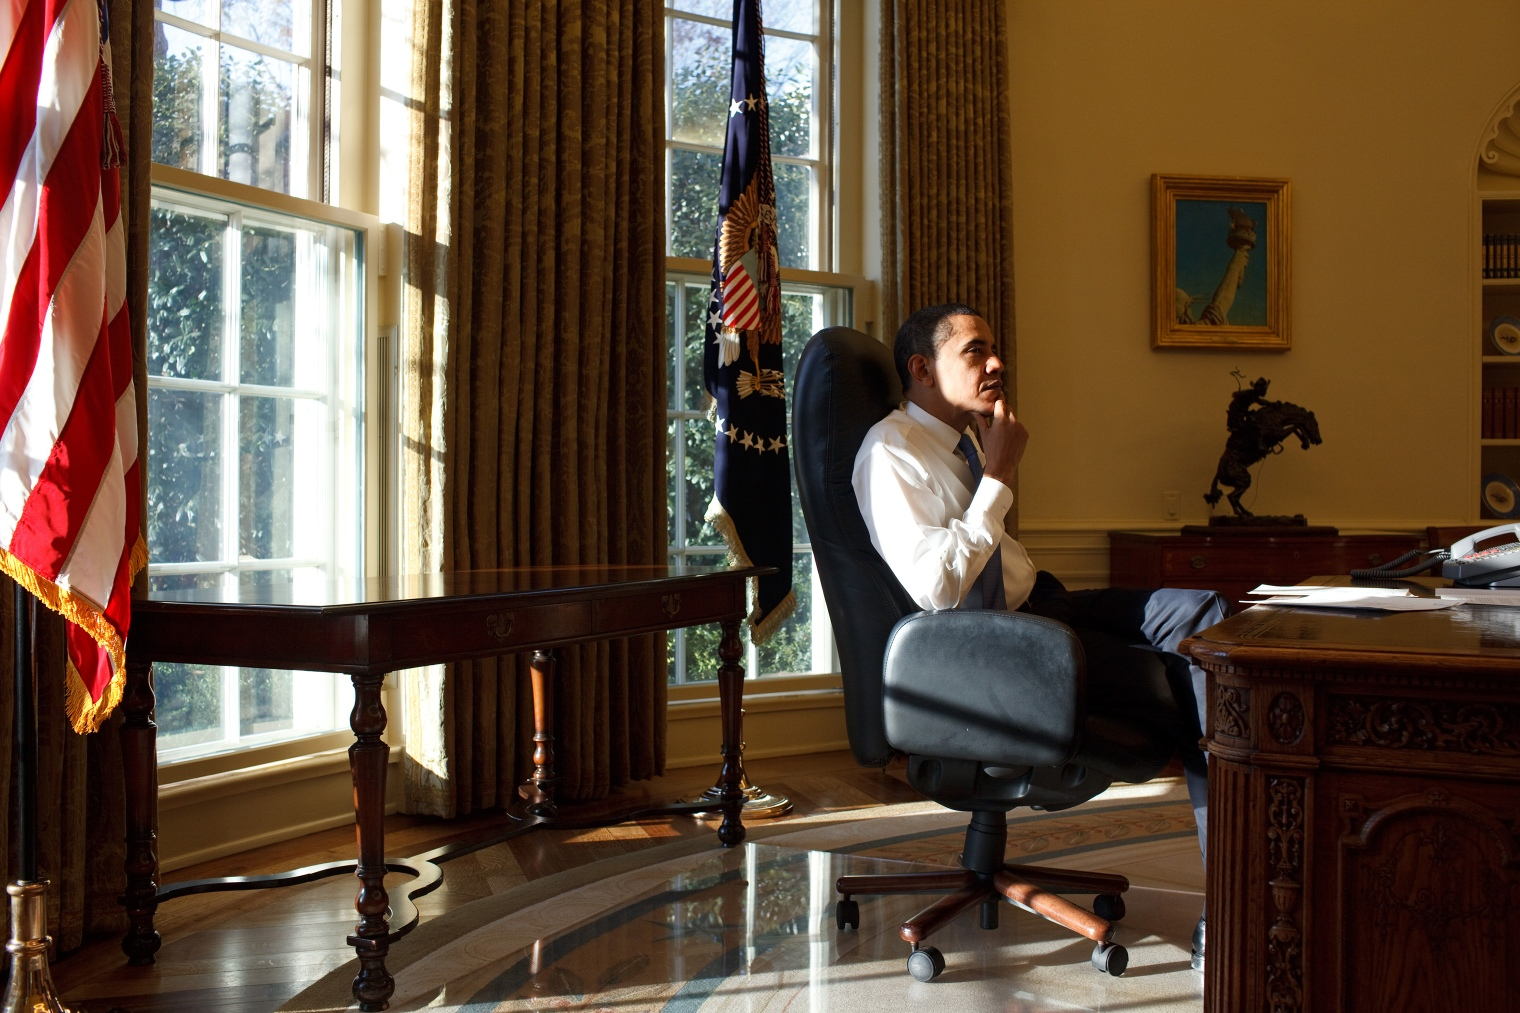 President Barack Obama in the Oval Office on his first day in office 1/21/09. Official White House Photo by Pete Souza